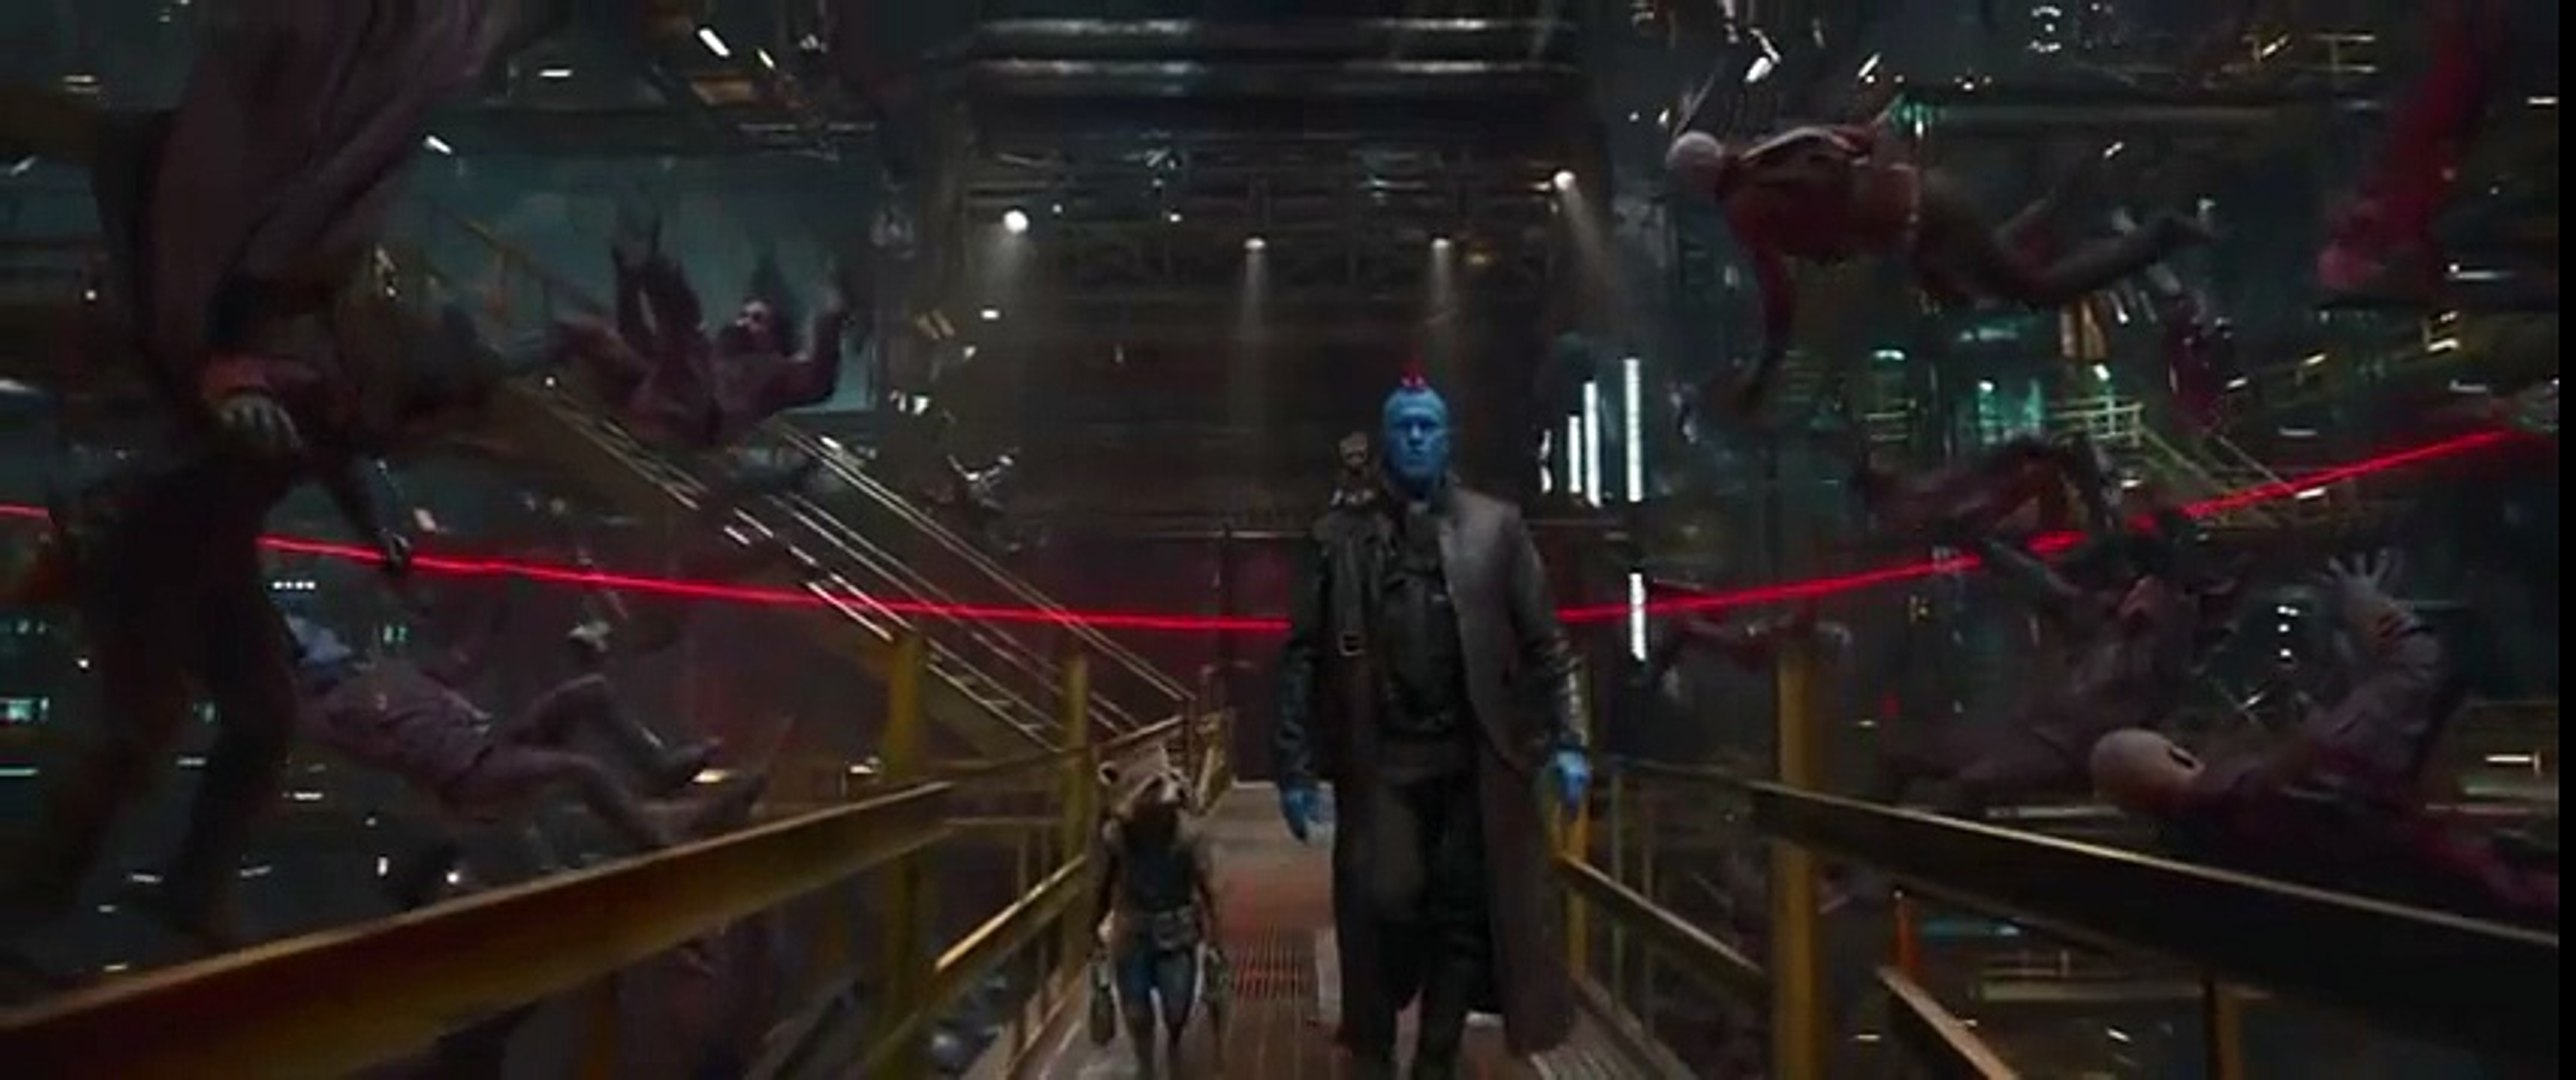 Guardians of the Galaxy Vol. 2 - Baby Groot Attacks